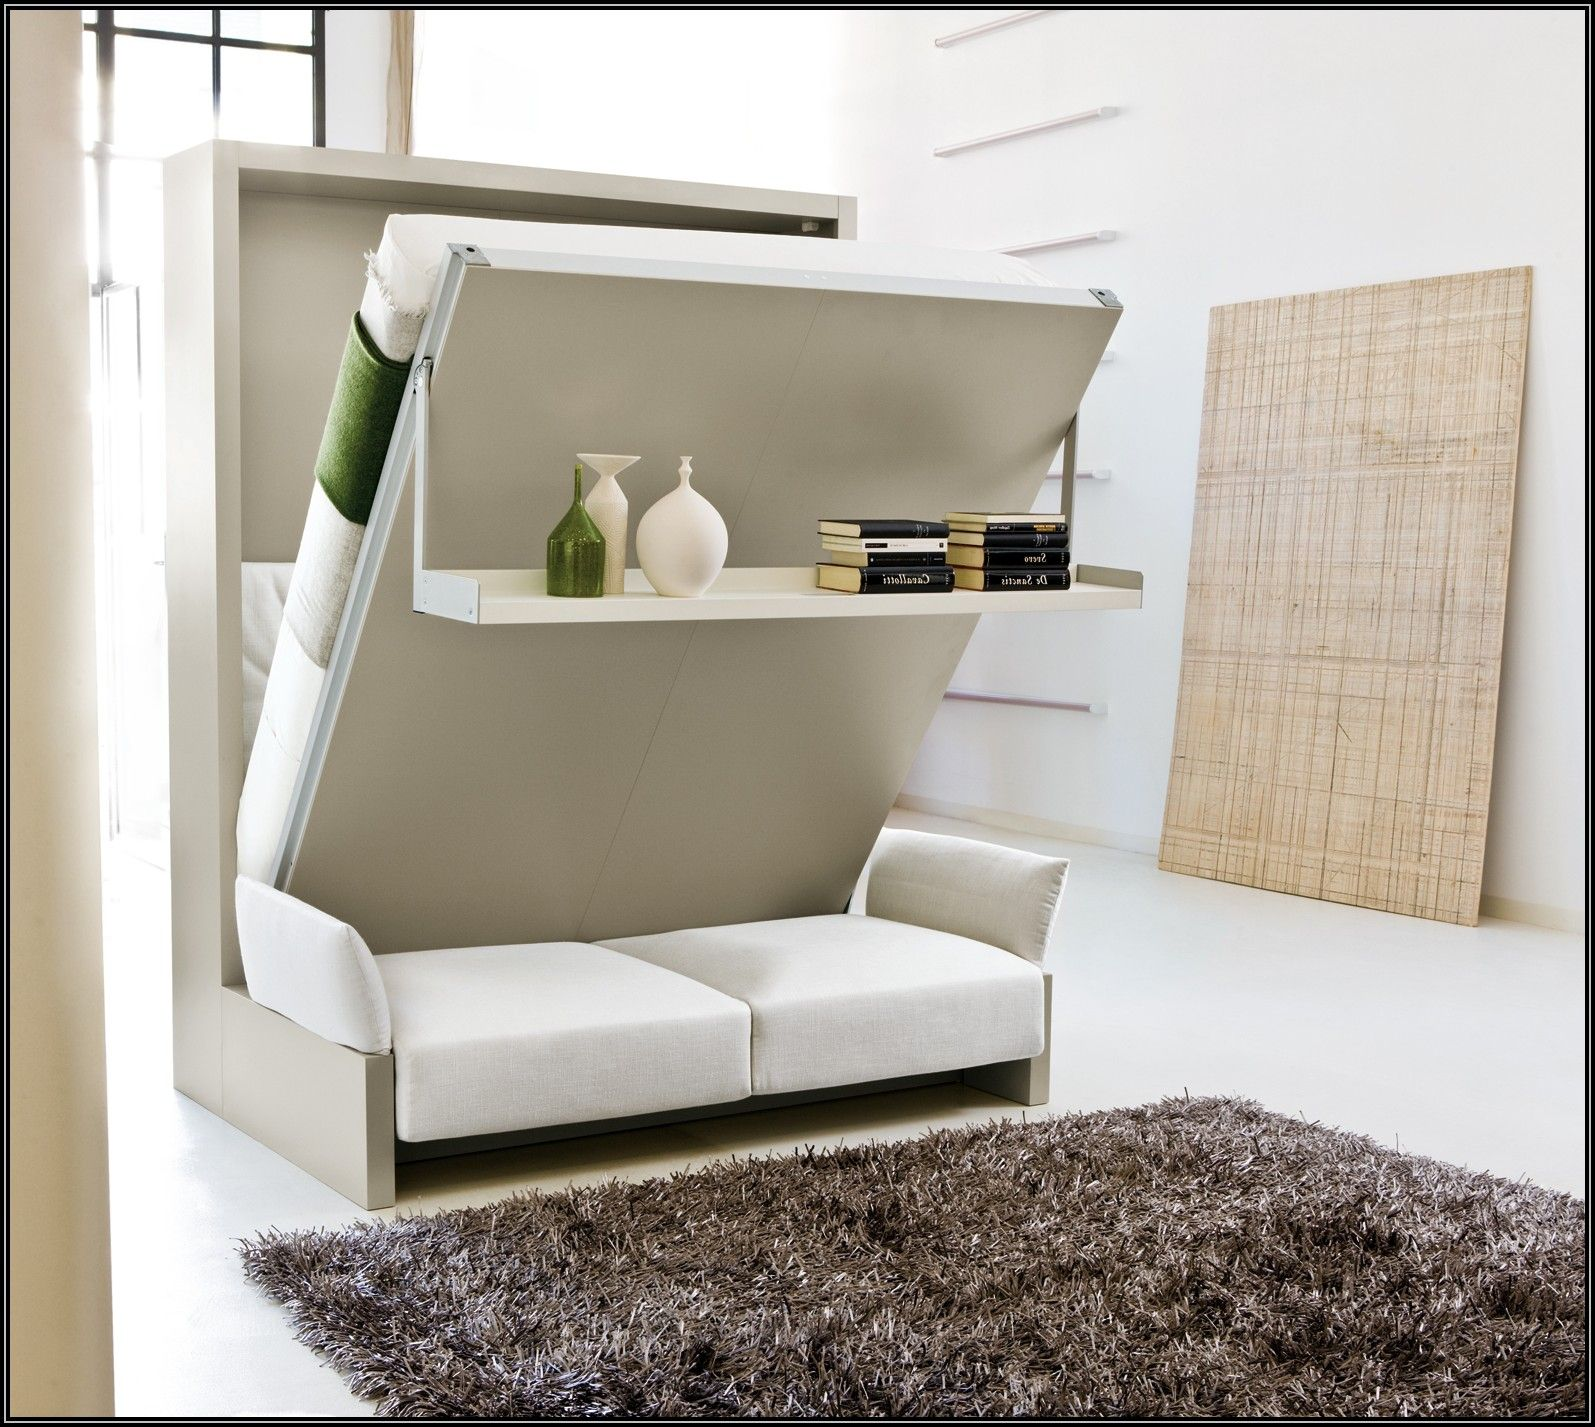 Save Small Space In A Bedroom Using Murphy Bed IKEA Outstanding Ikea With Convertible Sofa Also Shag Rug For Interior Design